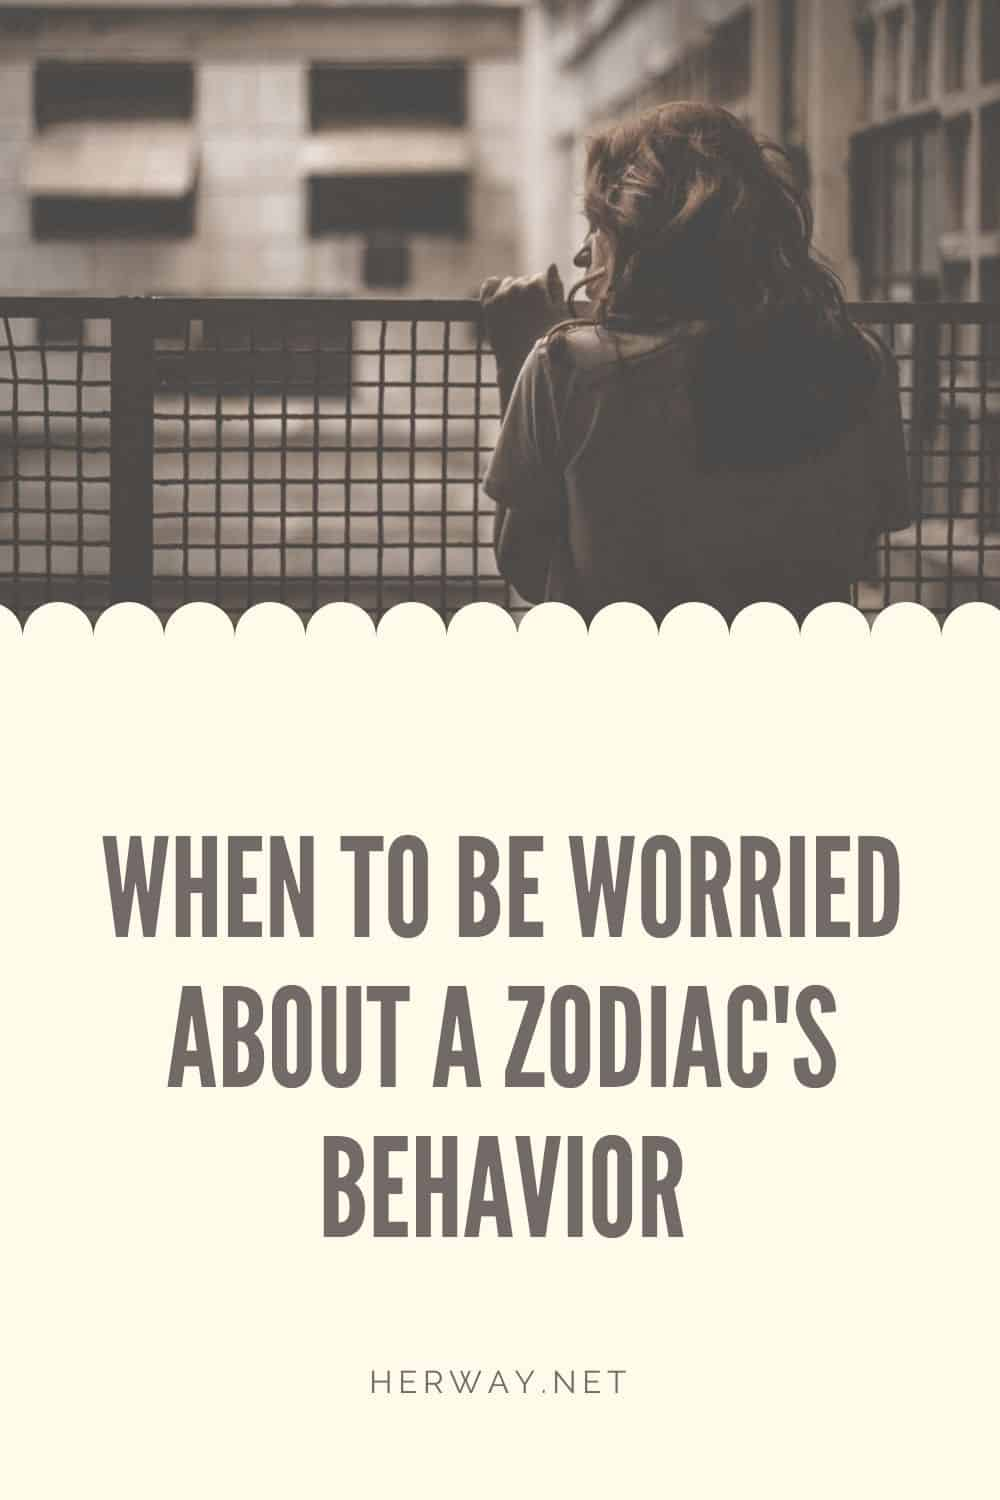 When To Be WORRIED About A Zodiac's Behavior